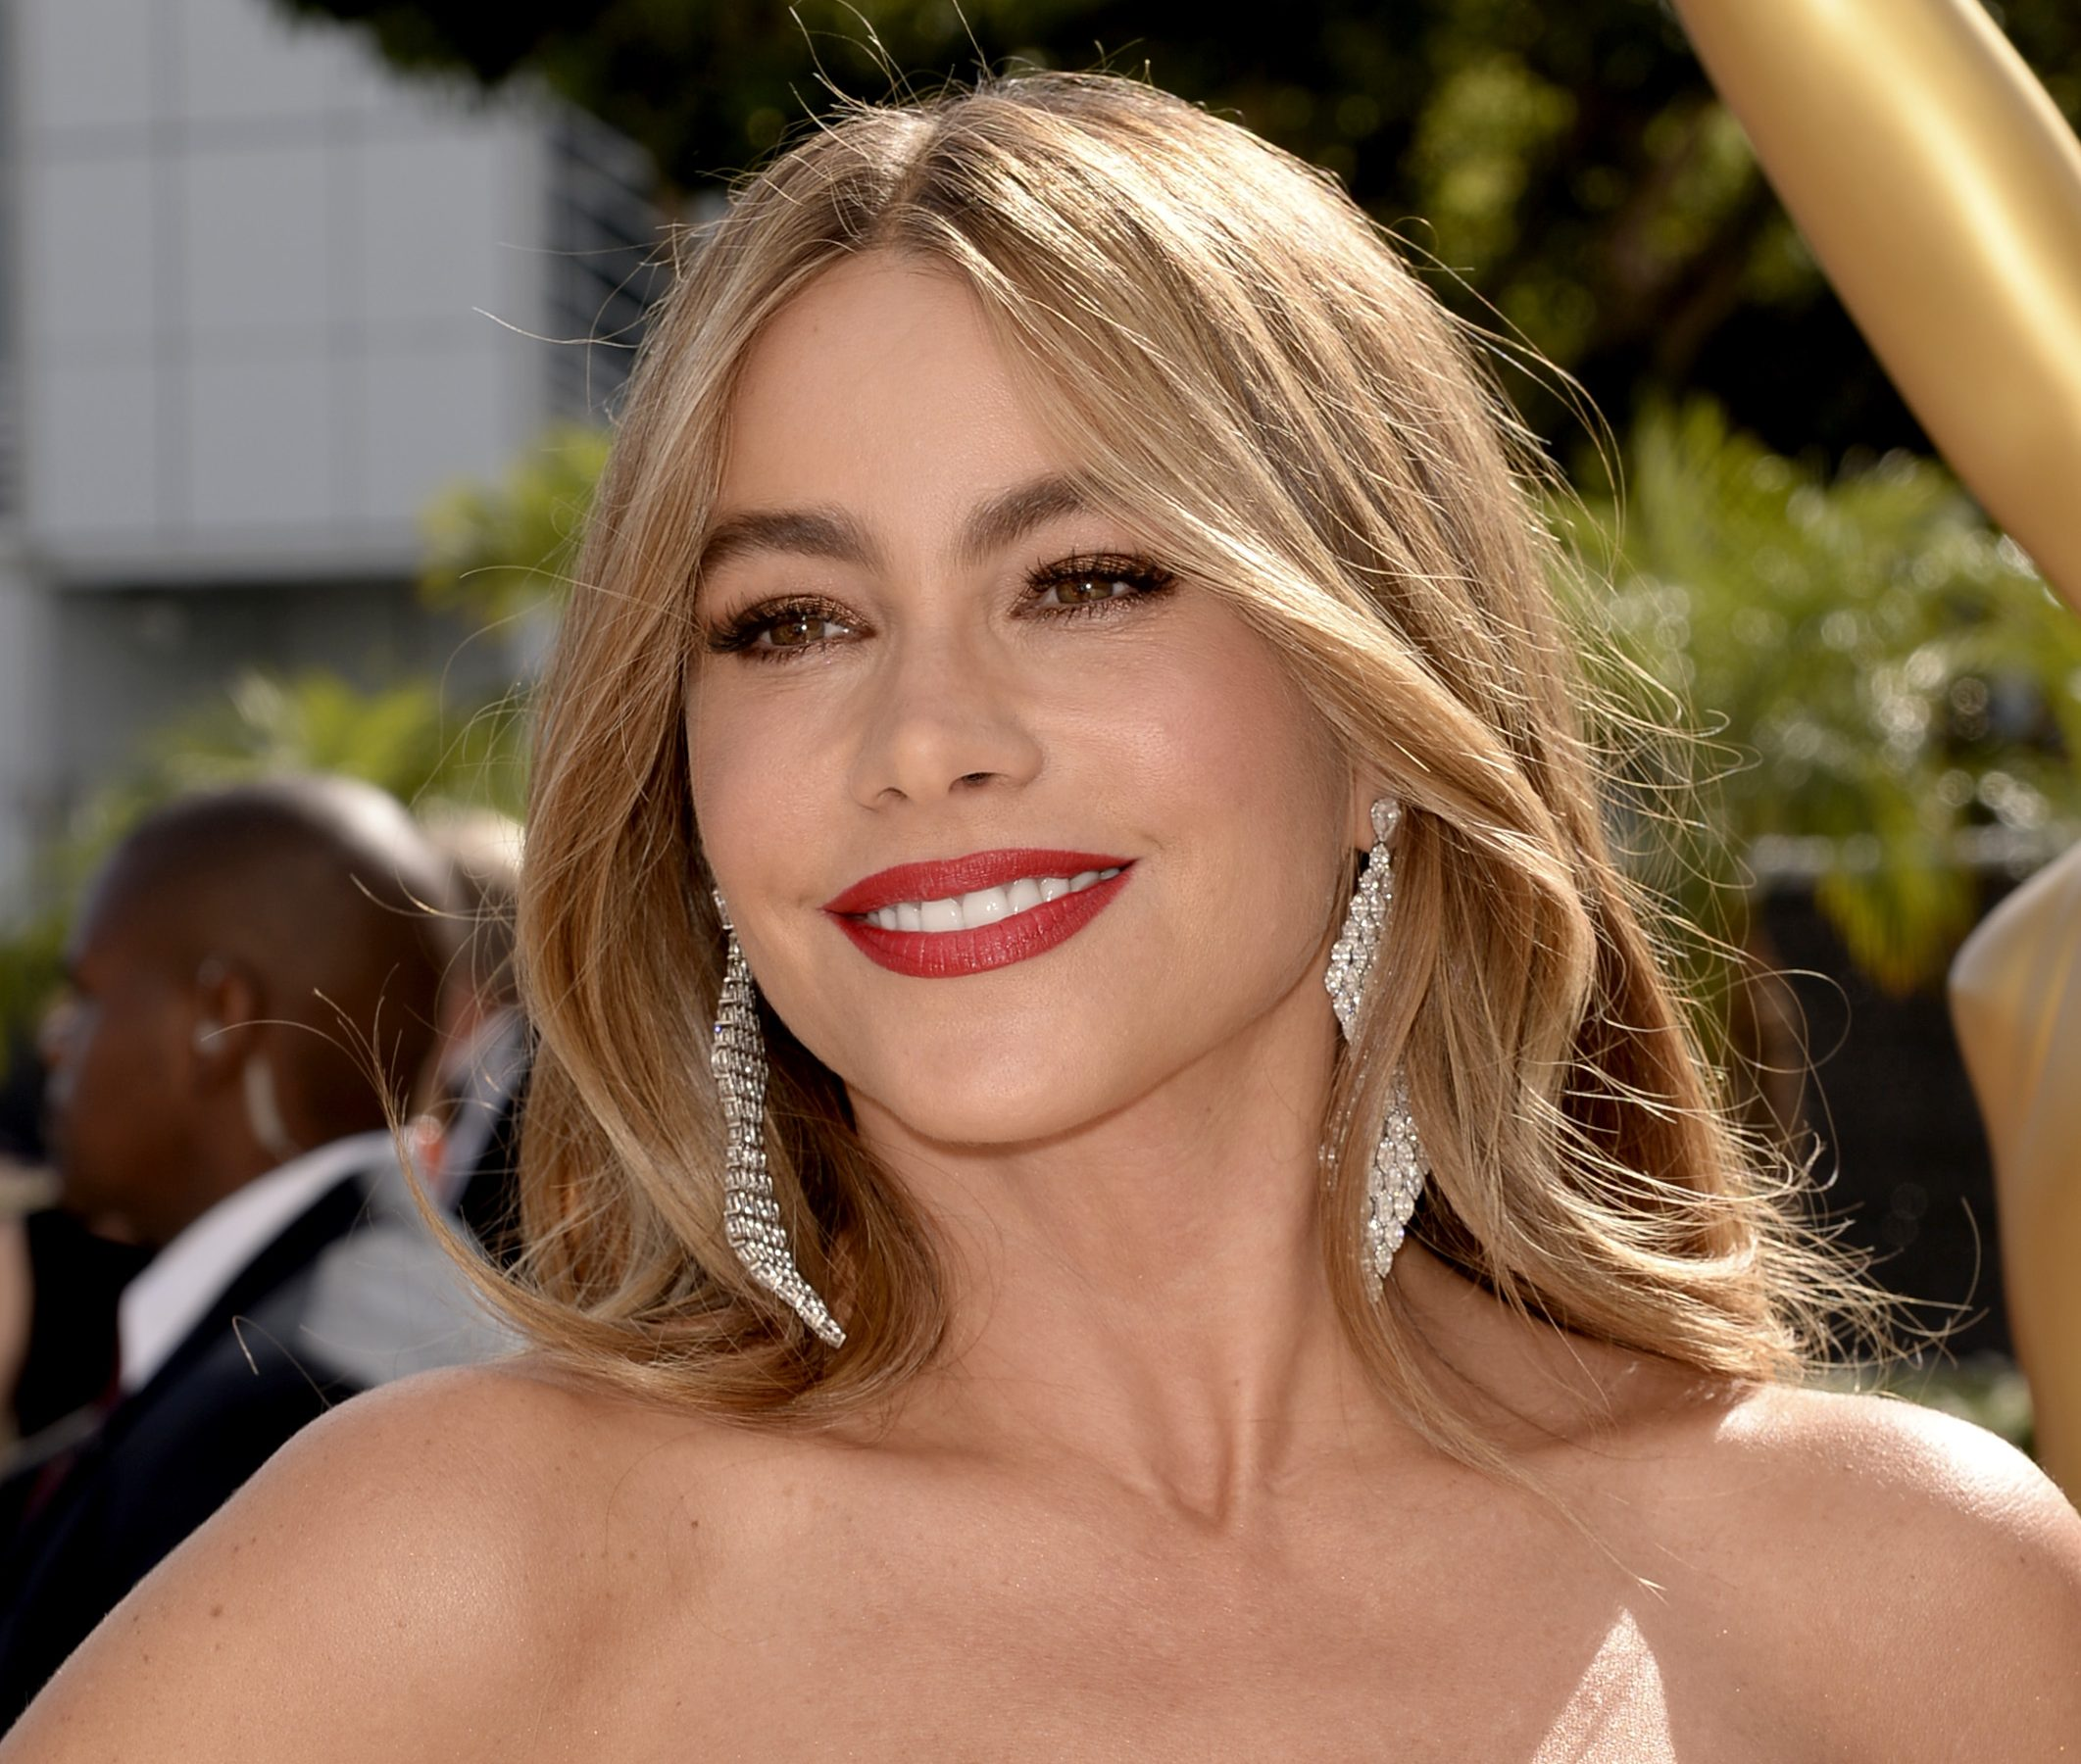 Sofía Vergara arrives at the 66th Primetime Emmy Awards at the Nokia Theatre L.A. Live on Monday, Aug. 25, 2014, in Los Angeles. (Photo by Dan Steinberg/Invision for the Television Academy/AP Images)